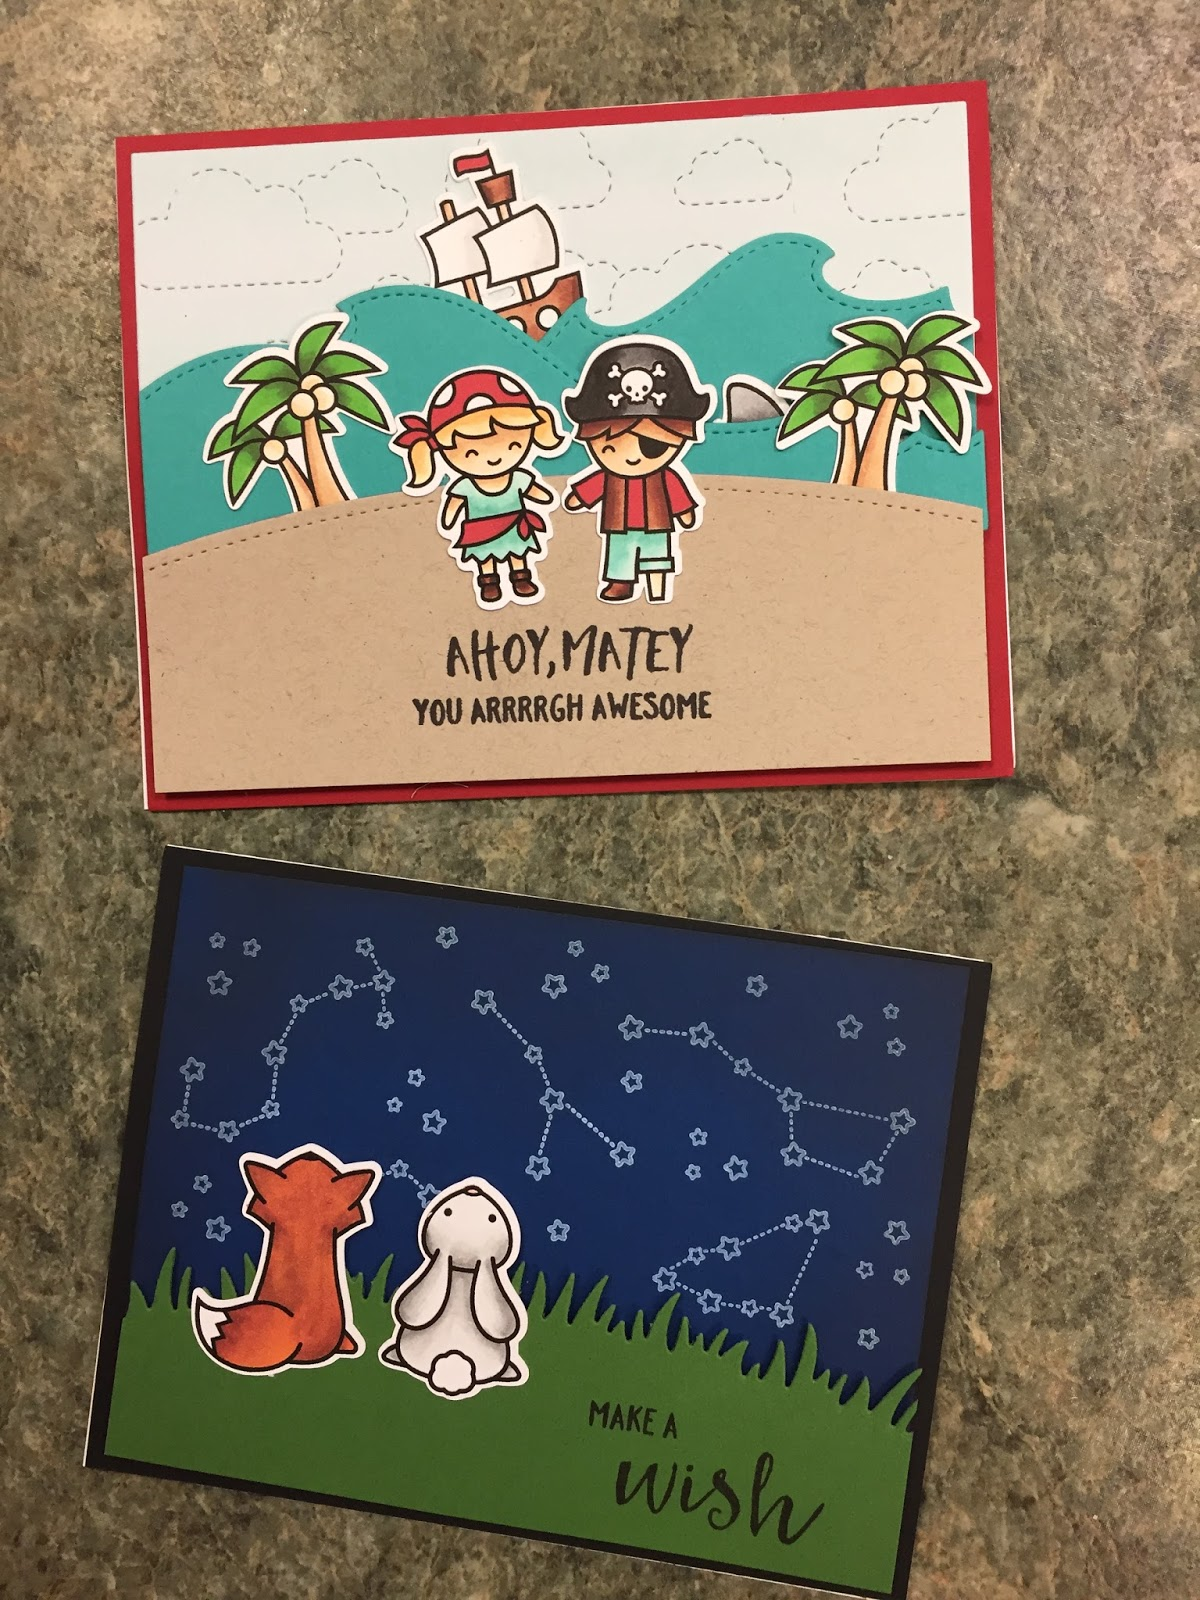 How to make scrapbook using illustration board - How About Using The Selfie Die On A Scrapbook Page Or Card And Instead Of Putting In A Colored Image Put In An Actual Photo To Selfie Share